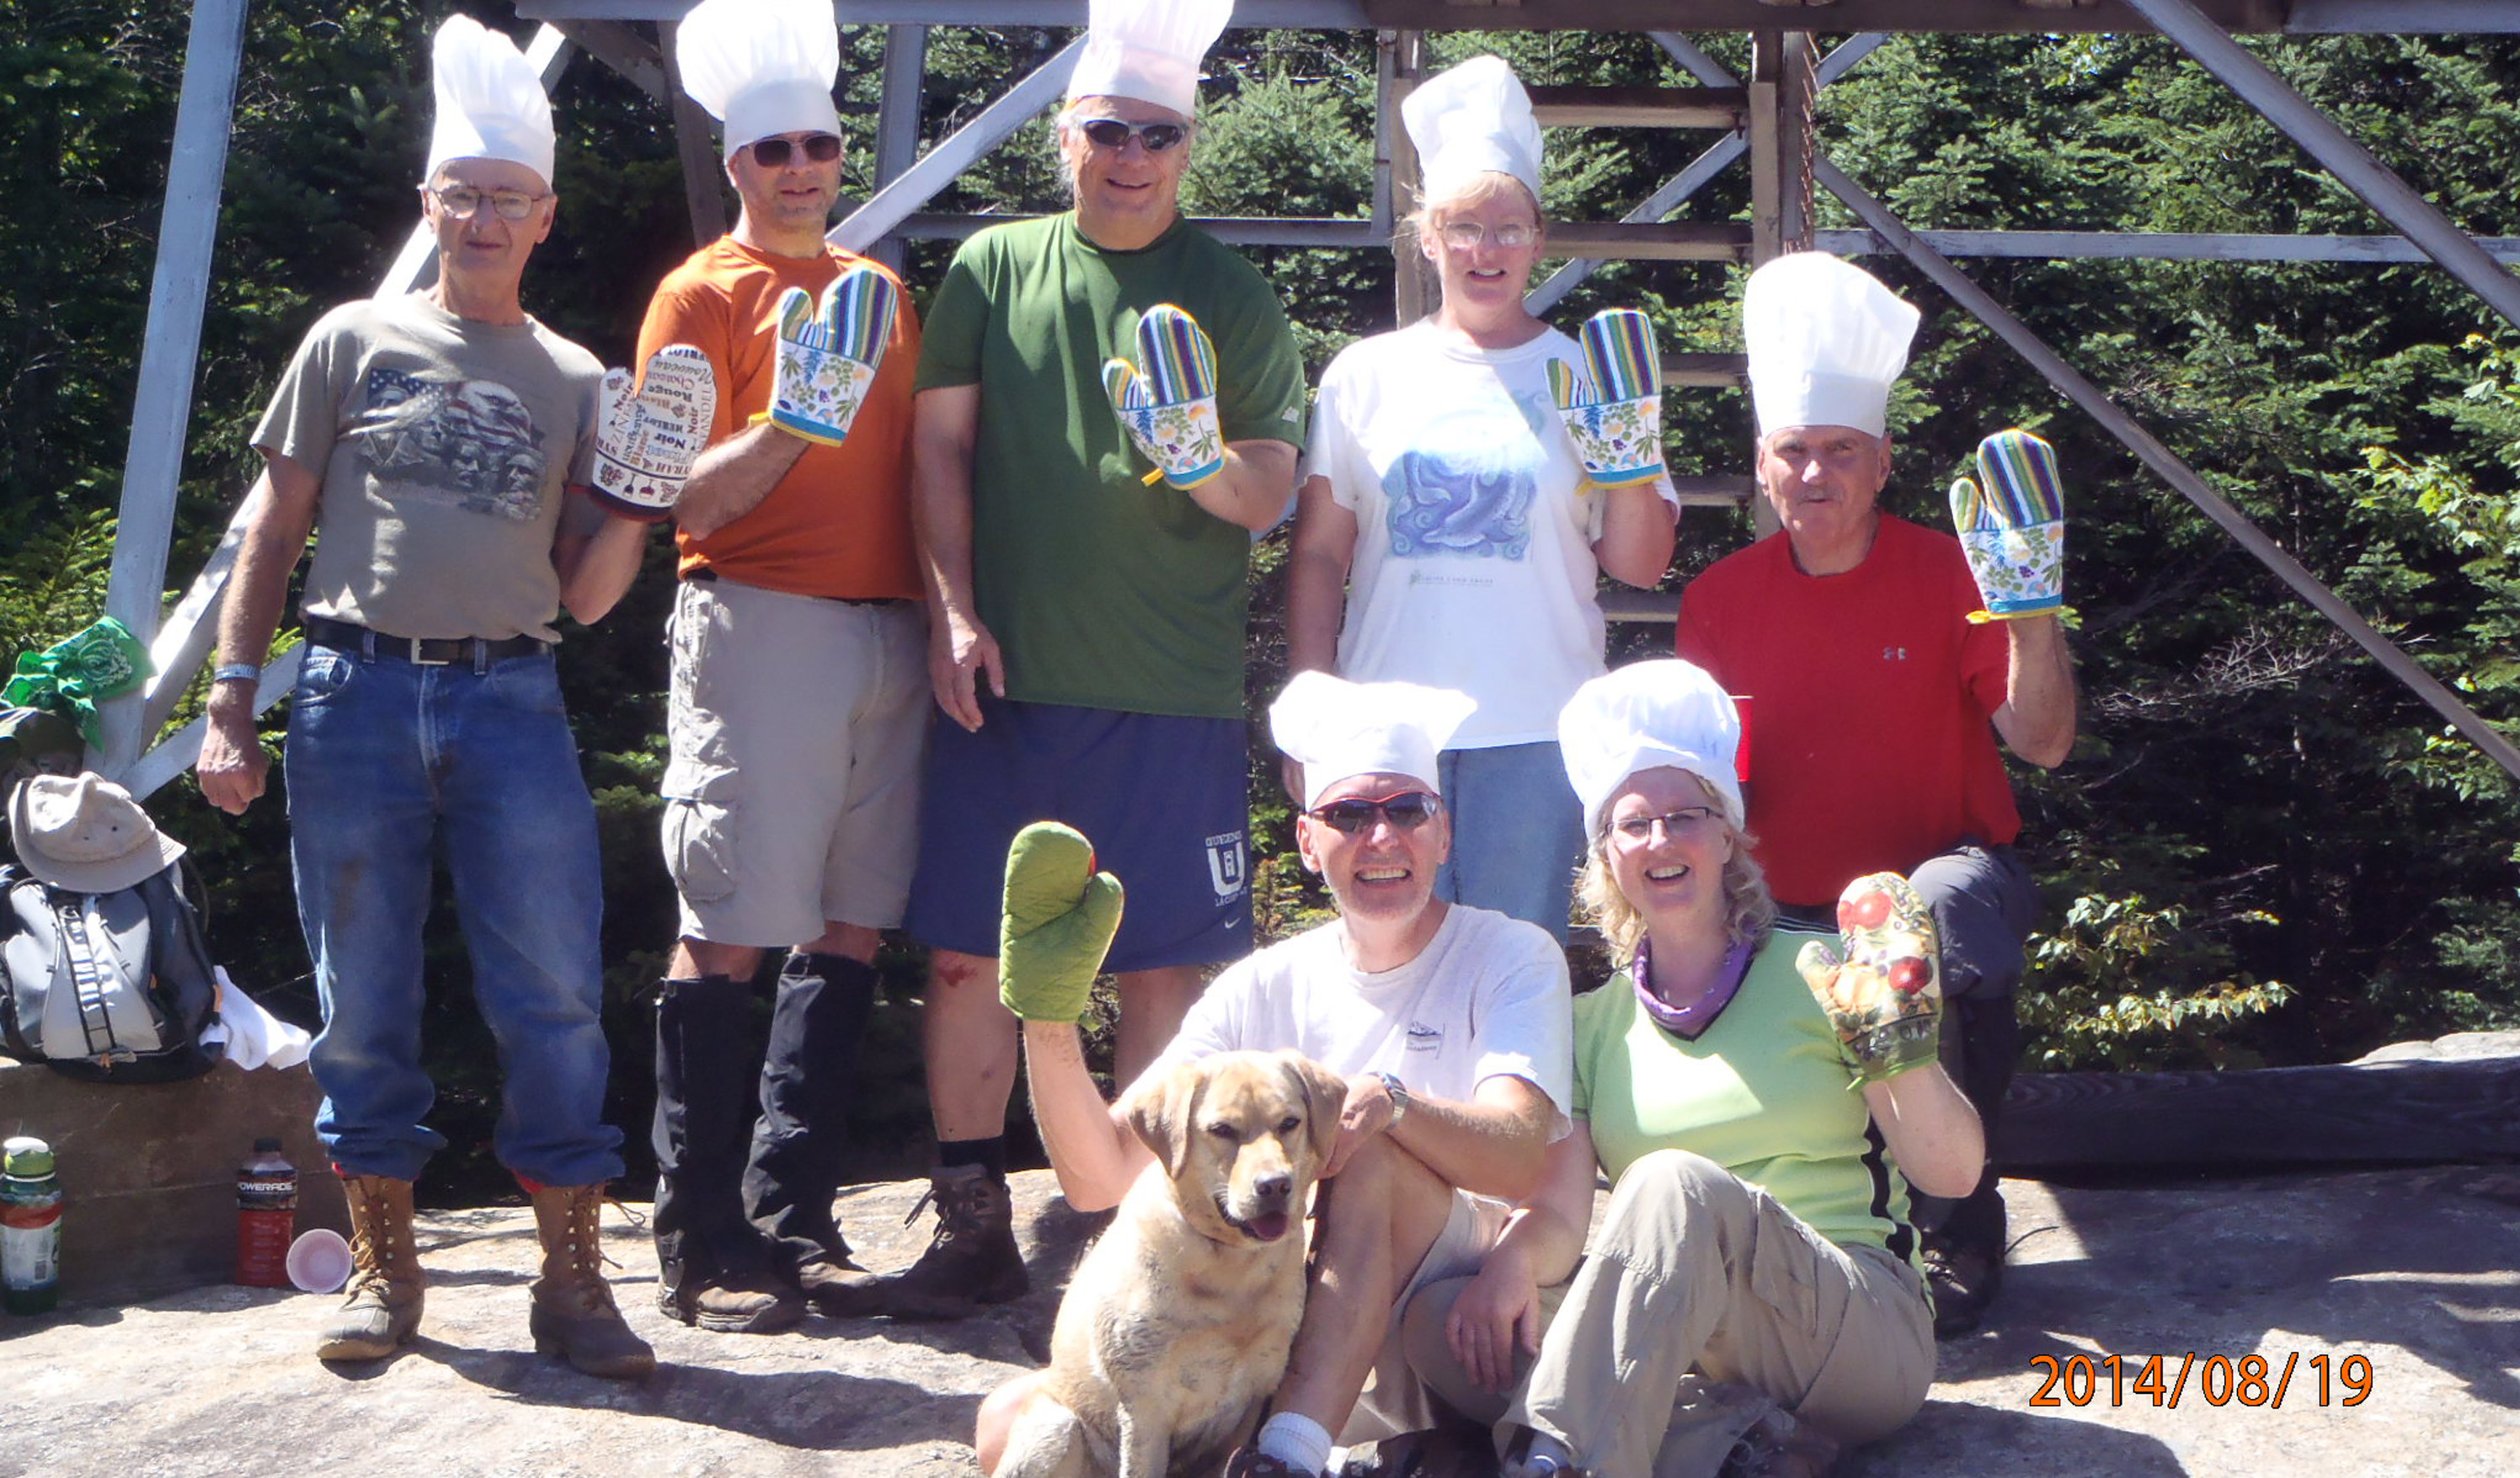 Silly group of hikers wearing chef hats and oven mitts in front of Fire Tower.